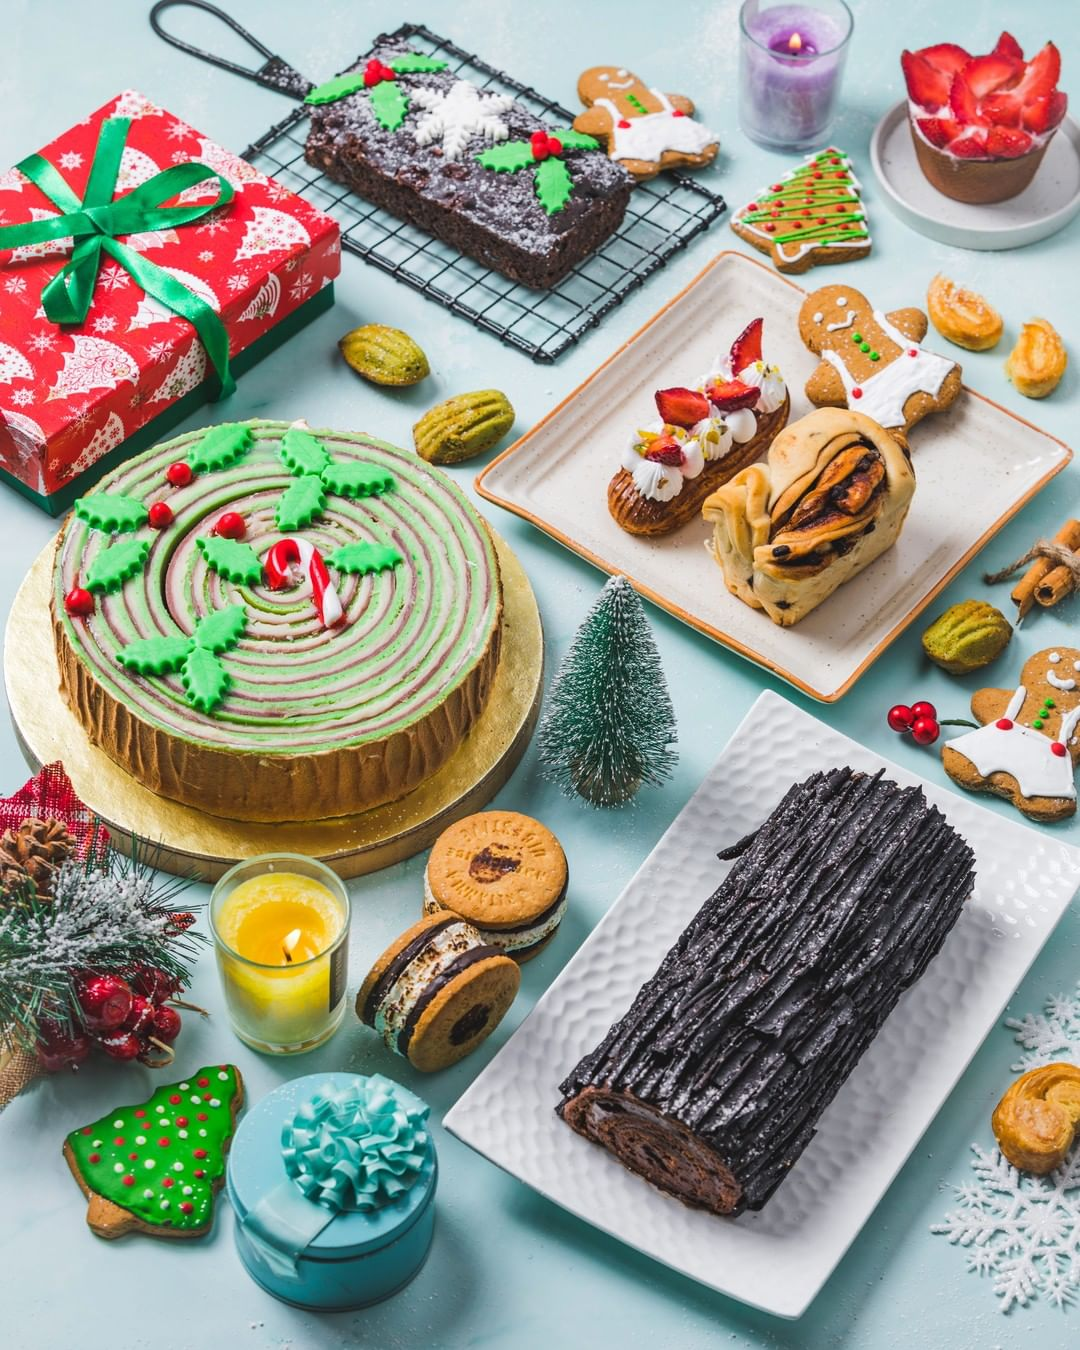 This #December, we're delighted to reveal that The Claus' are taking over #FoodhallIndia with oodles of their Christmas goodies and seasonal traditions!  Mrs. Claus' globe-trotting medley of merry sweet treats features a festive line-up from plum cakes mince pies and log cakes to pannetone, dry fruit stollen and Christmas cookies & cupcakes!  Of course, you can expect a fitting festive makeover of our stores too, replete with edible Croquembouche Christmas trees, life-size gingerbread houses, Christmas carols, cosy corners for an indulgent cuppa cocoa and so much more…  #ForTheLoveofChristmas, see you at a Foodhall near you!  #FoodhallIndia #Christmas2019 #ChristmasinIndia #FestiveSeason #FestiveTreats #ChristmasTreats #ChocolateLogCake #Stollen #MincePies #Pannetonne #ChristmasCookies #ChristmasCupcakes #PlumCakes